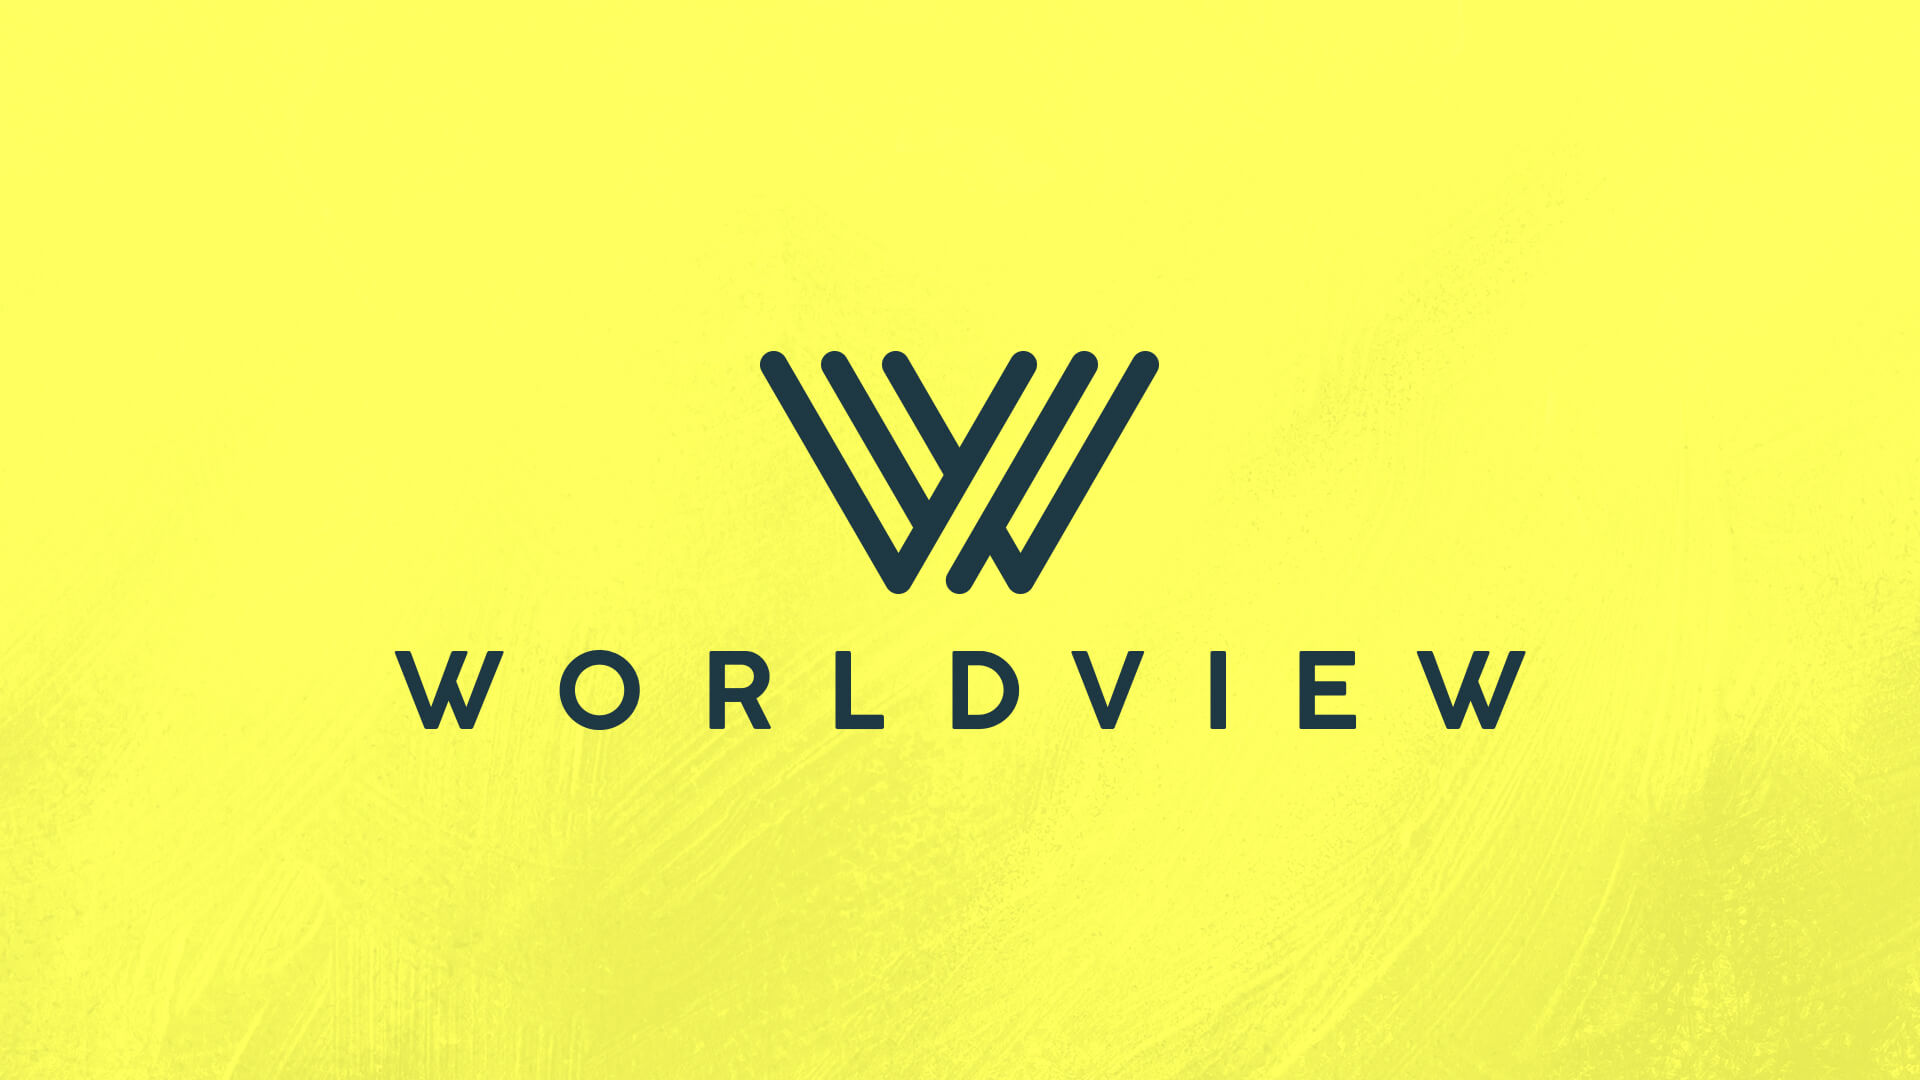 worldview-1920x1080.jpg